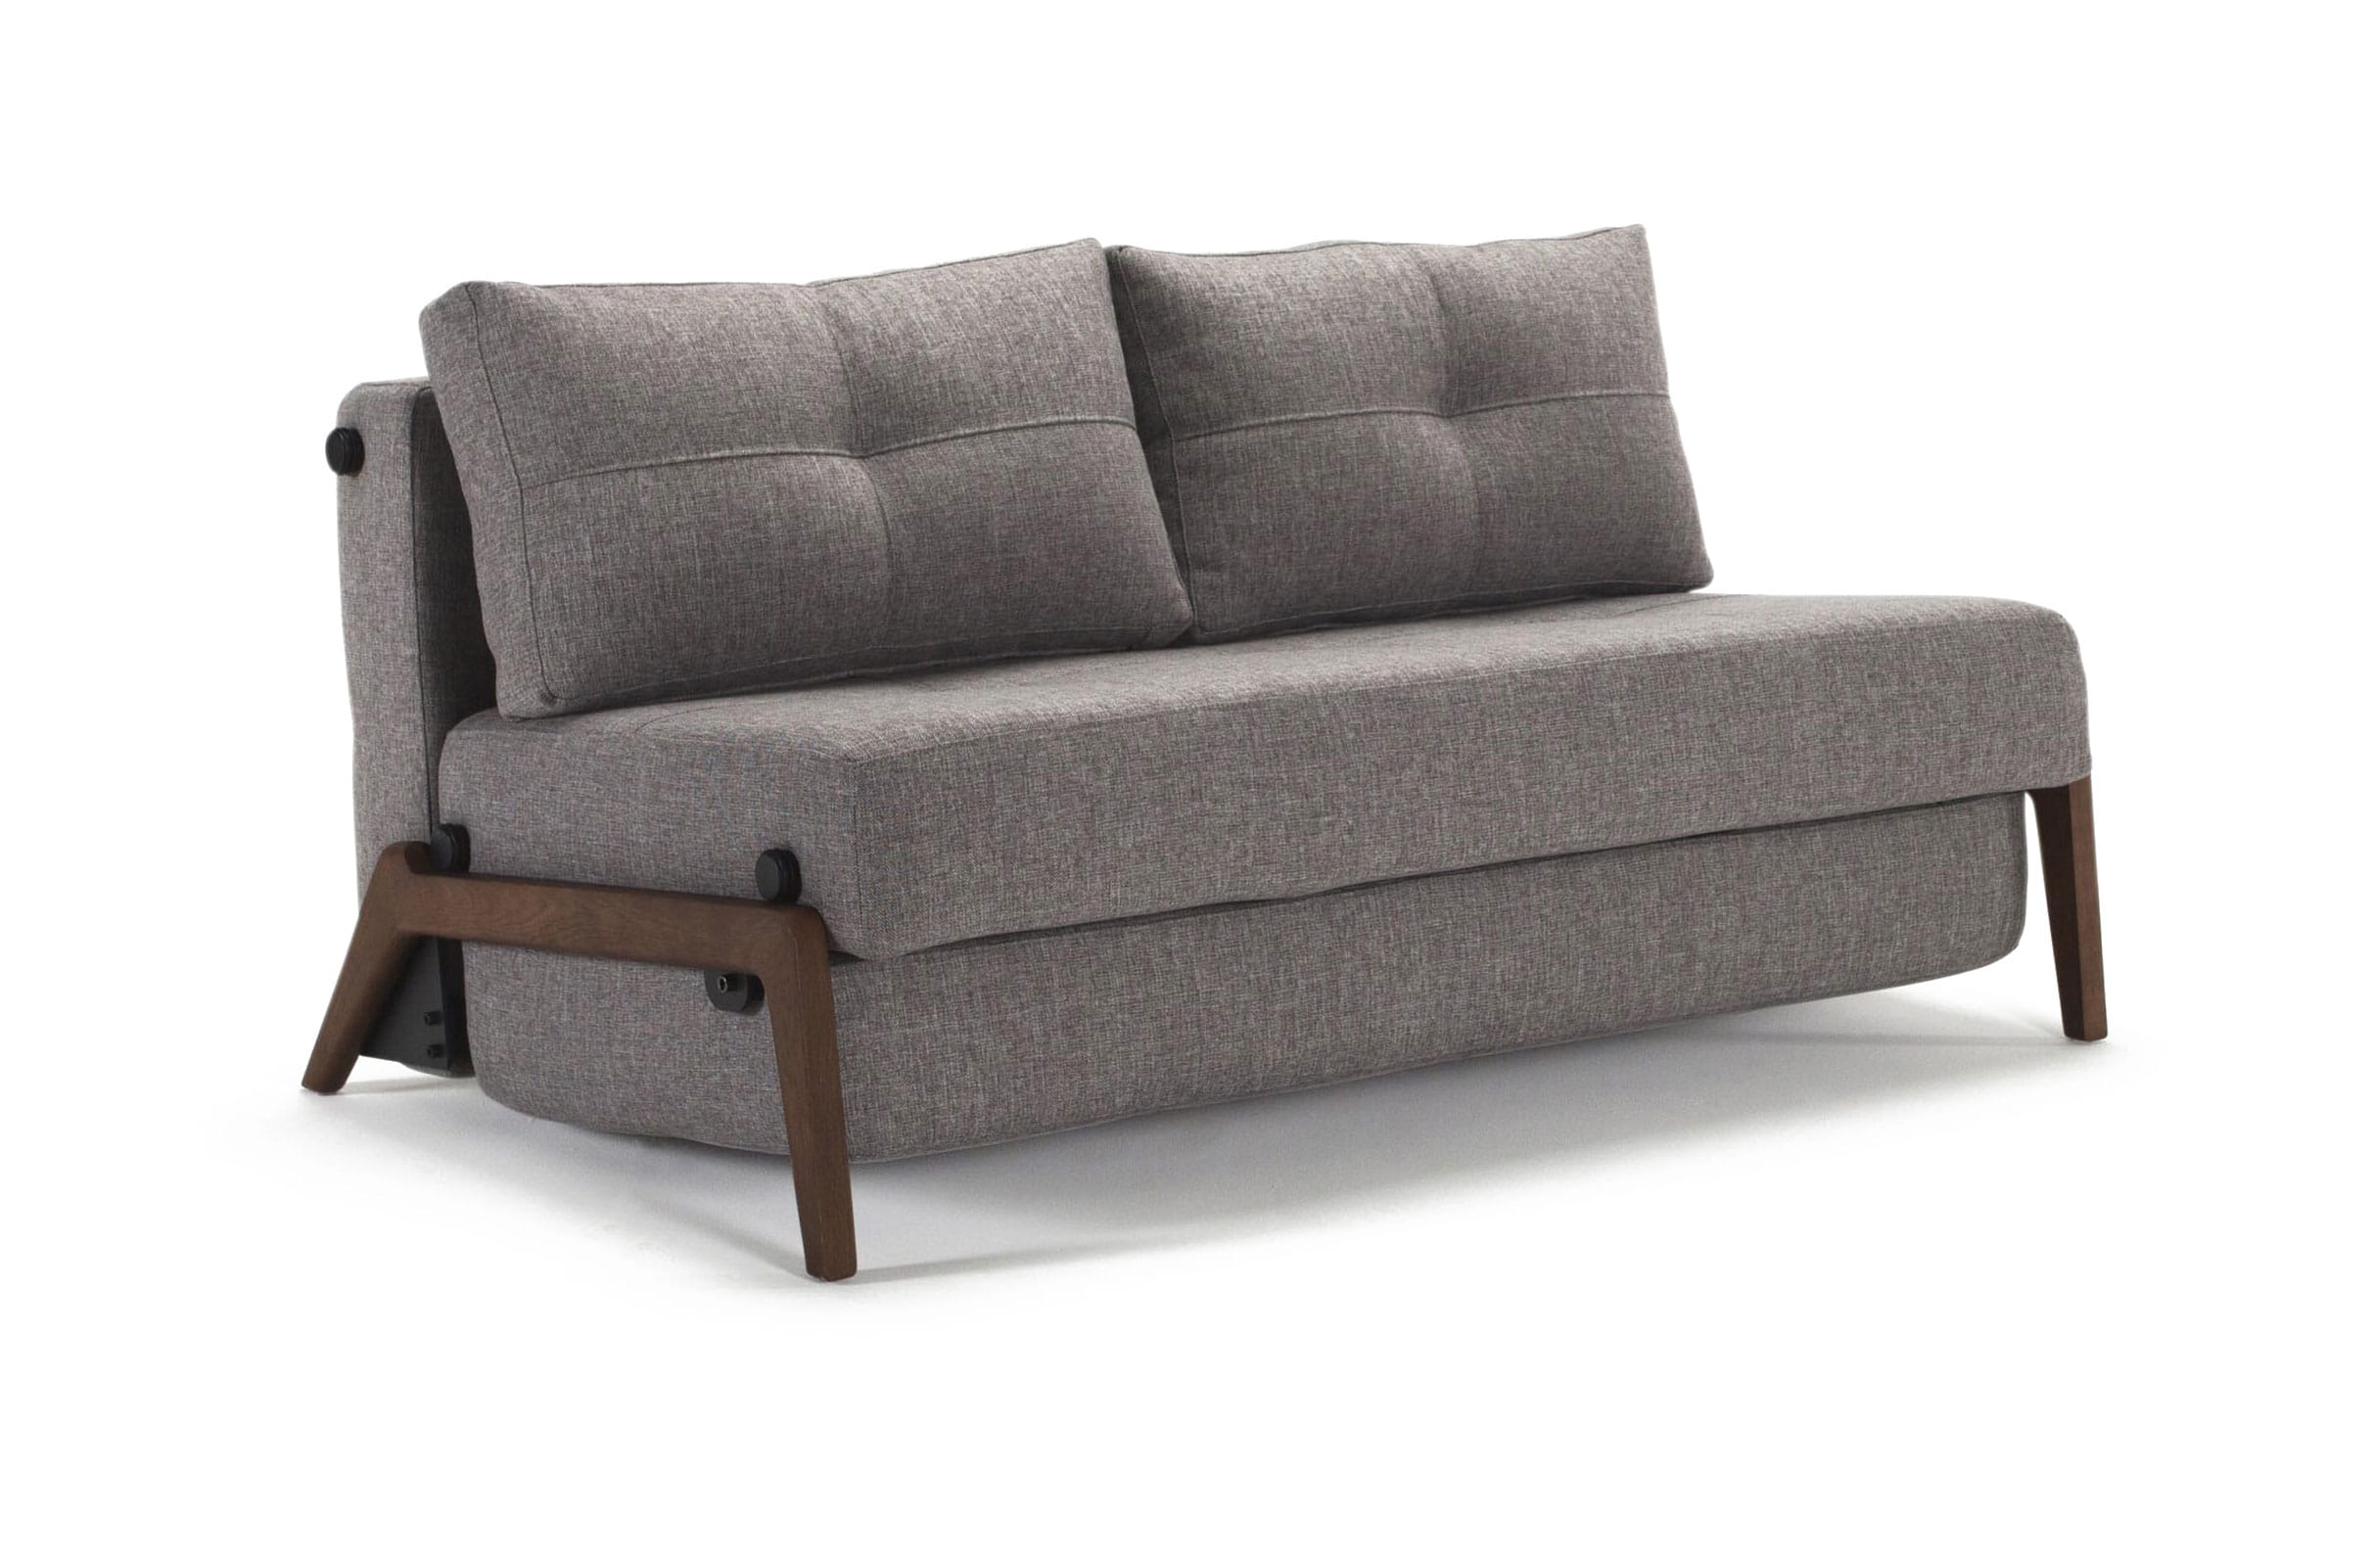 Cubed Deluxe Sofa Bed Queen Size Mixed Dance Gray by Innovation